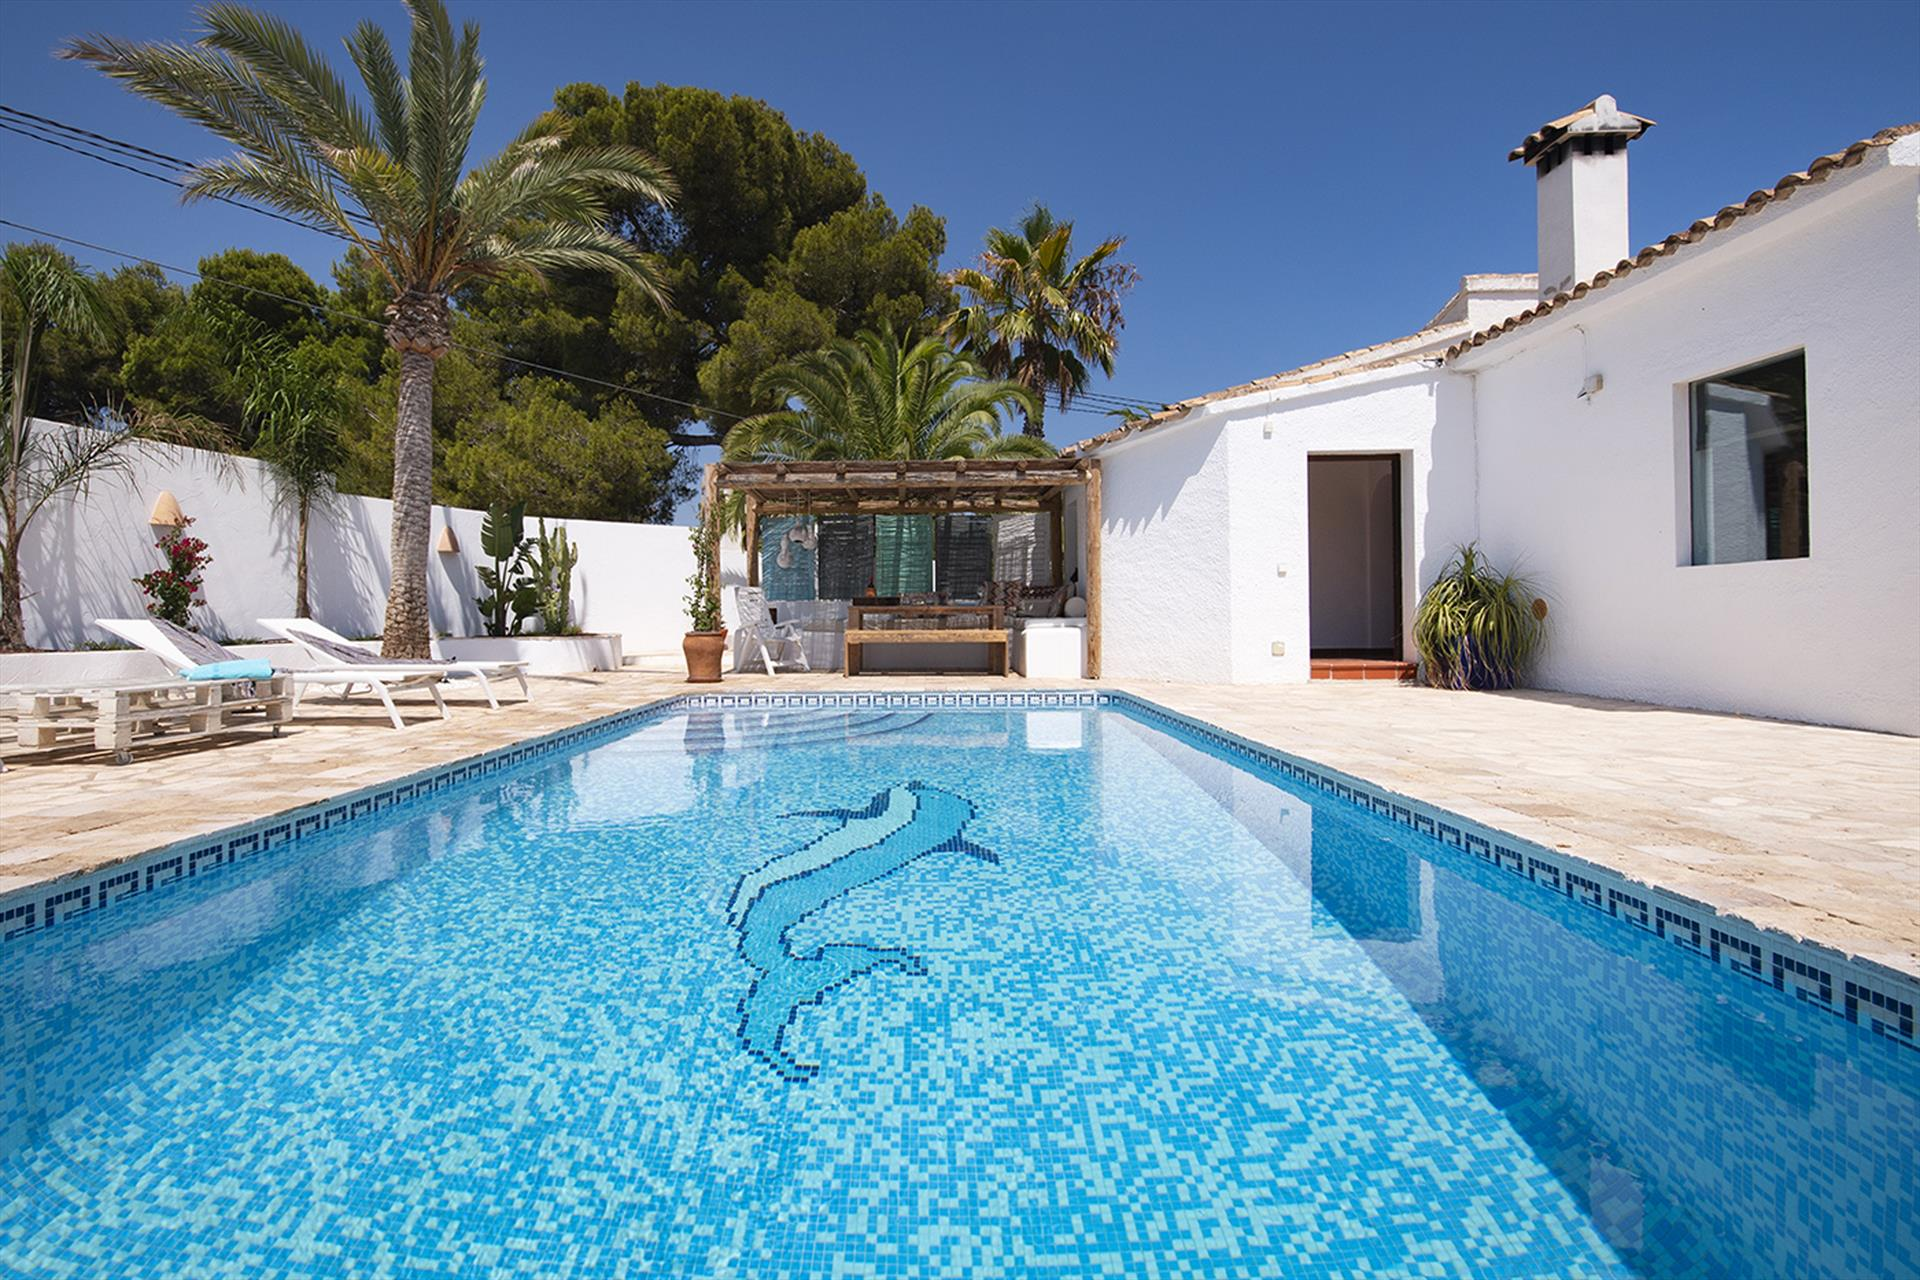 Lagarta, Wonderful and cheerful villa in Moraira, on the Costa Blanca, Spain  with private pool for 6 persons.....